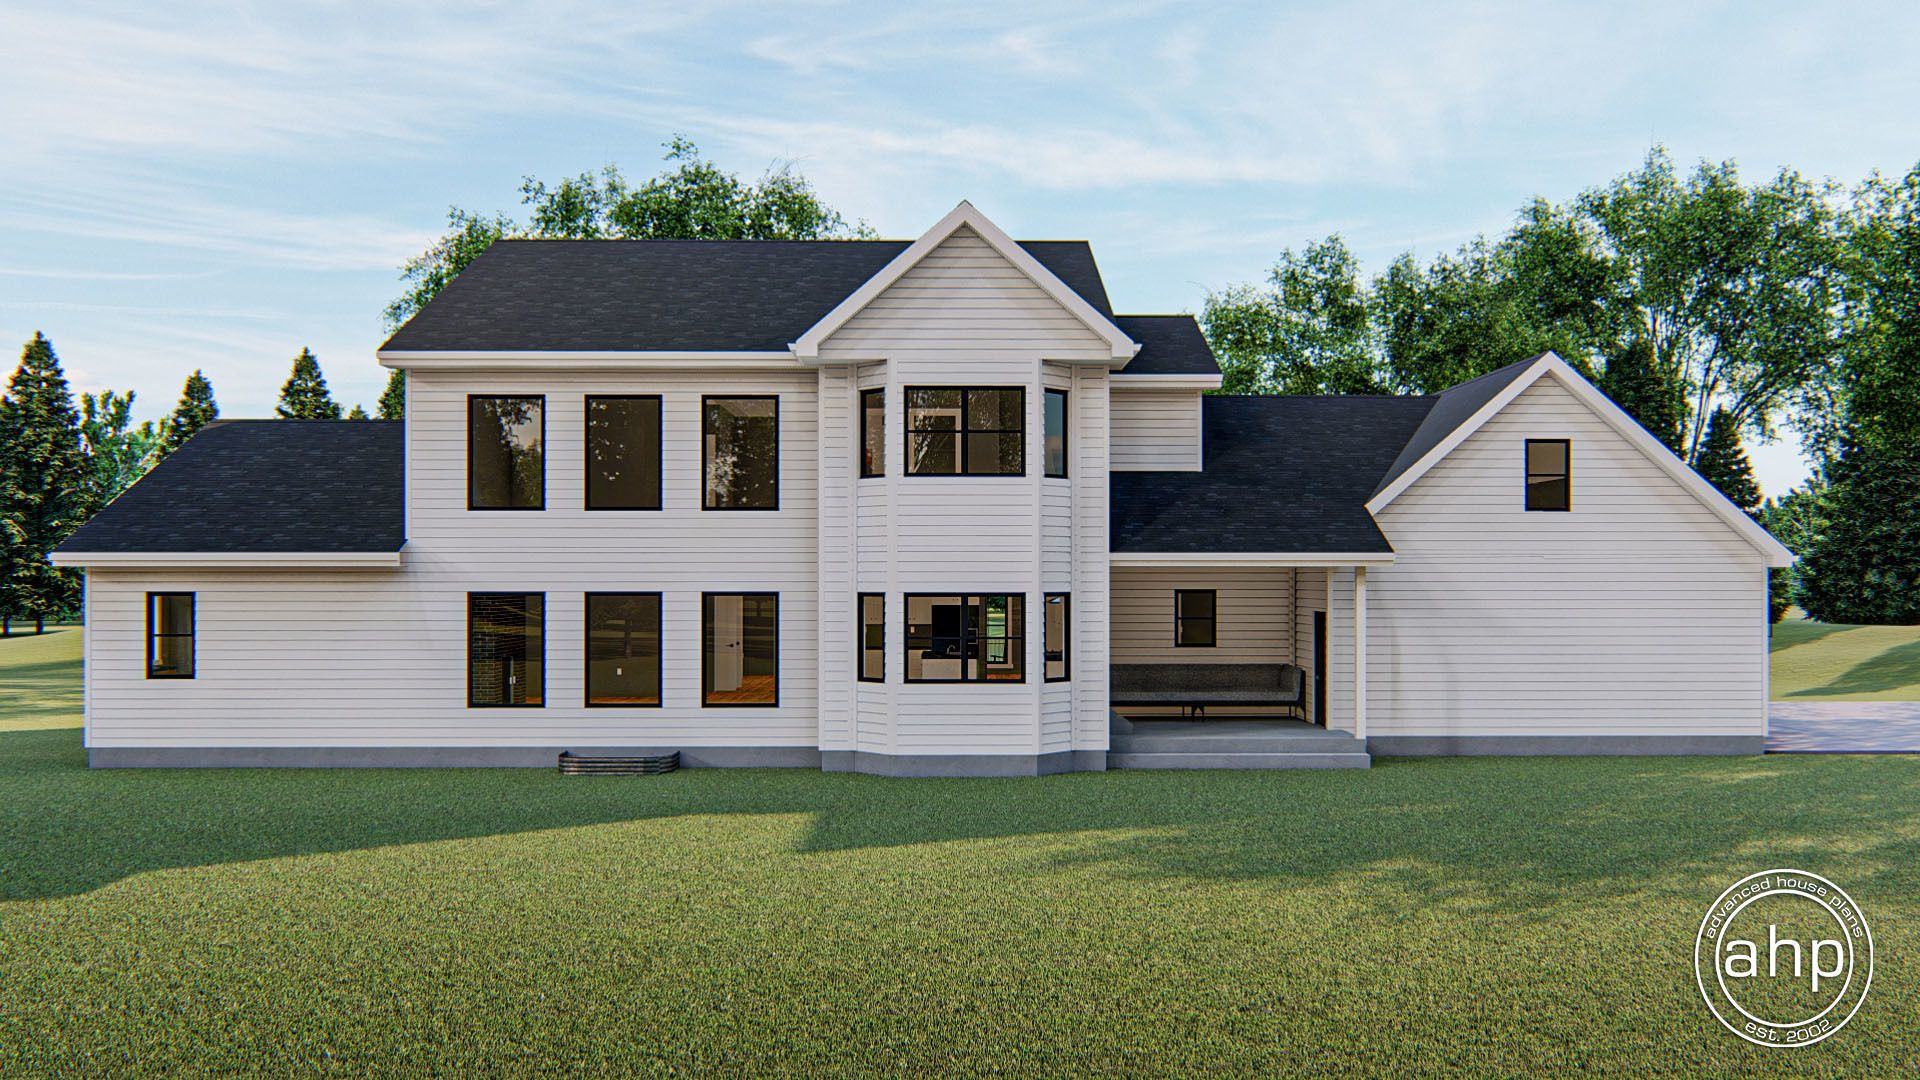 Strattfield 1.5 Story Modern Farmhouse House Plan (With